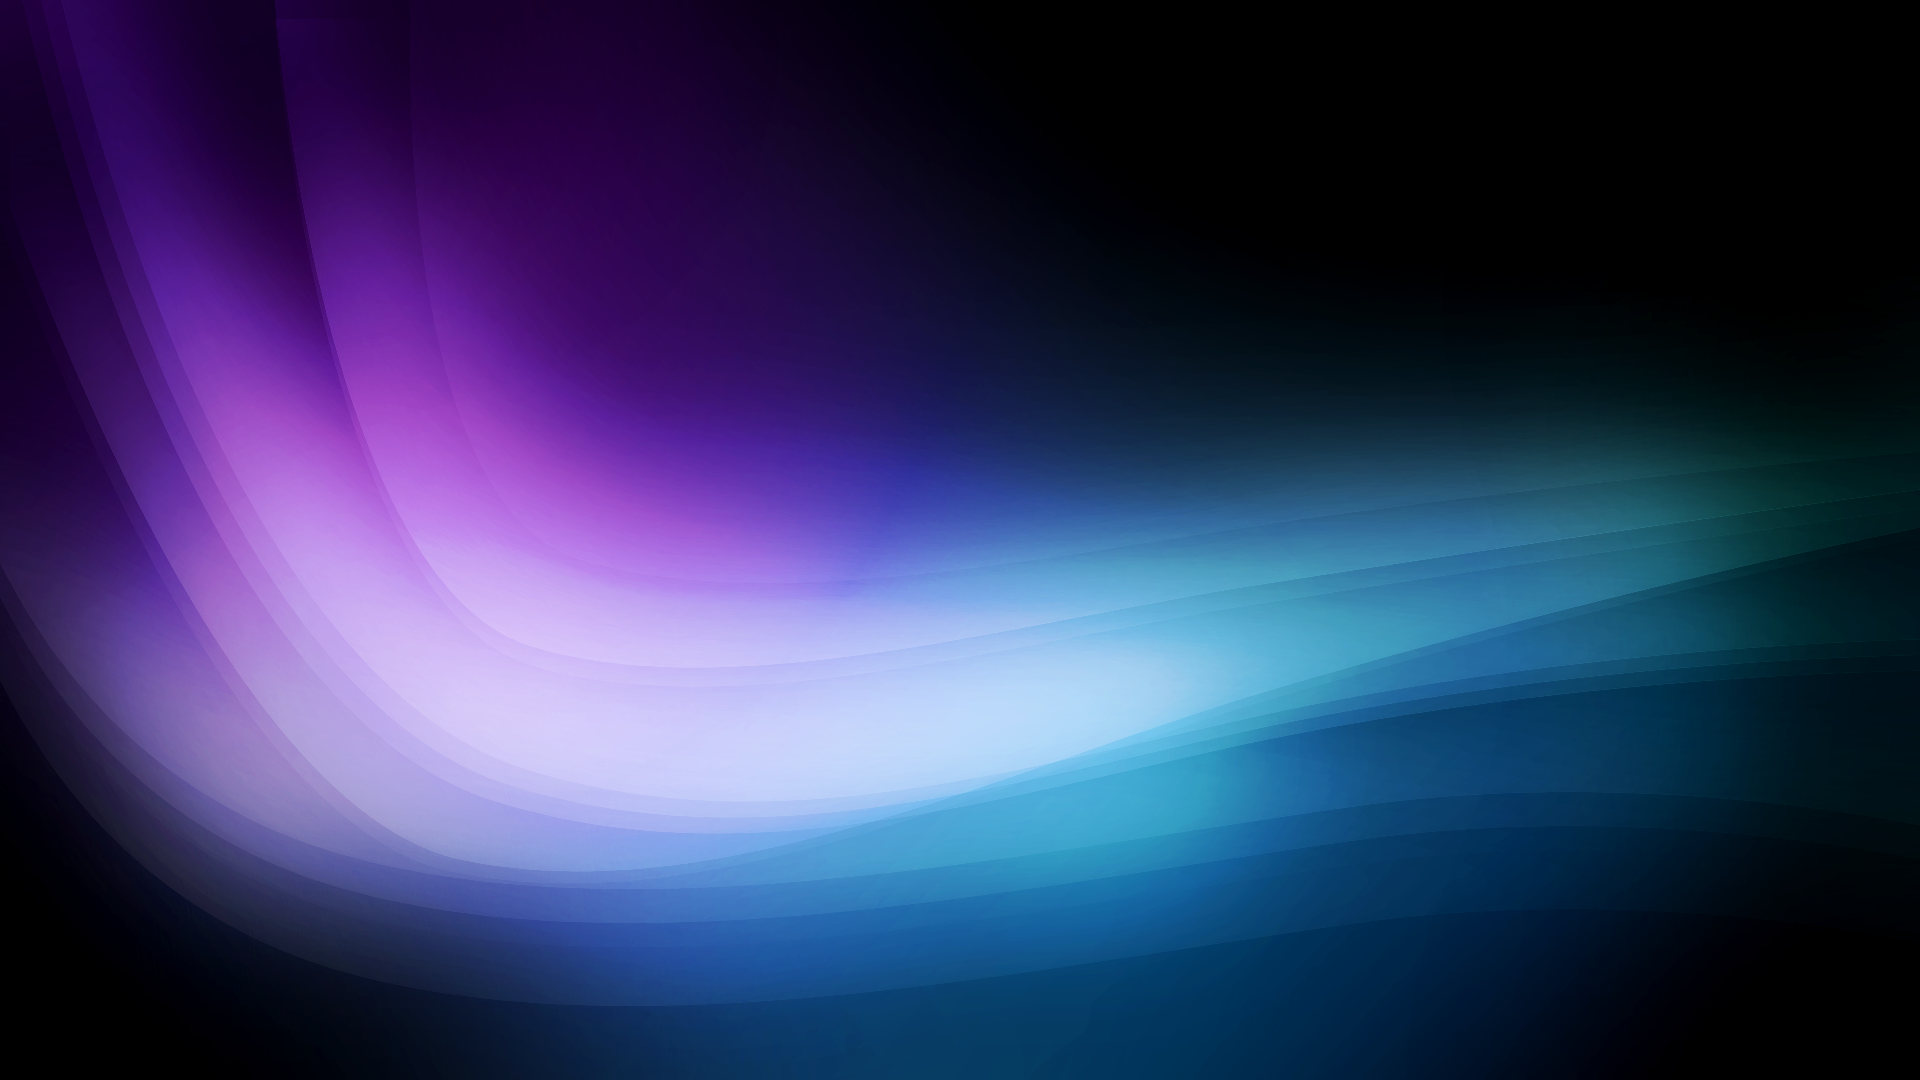 Iphone wallpaper fast furious - Abstract Wallpaper Without Bokeh By Ktostam25 D4i8a7p Png